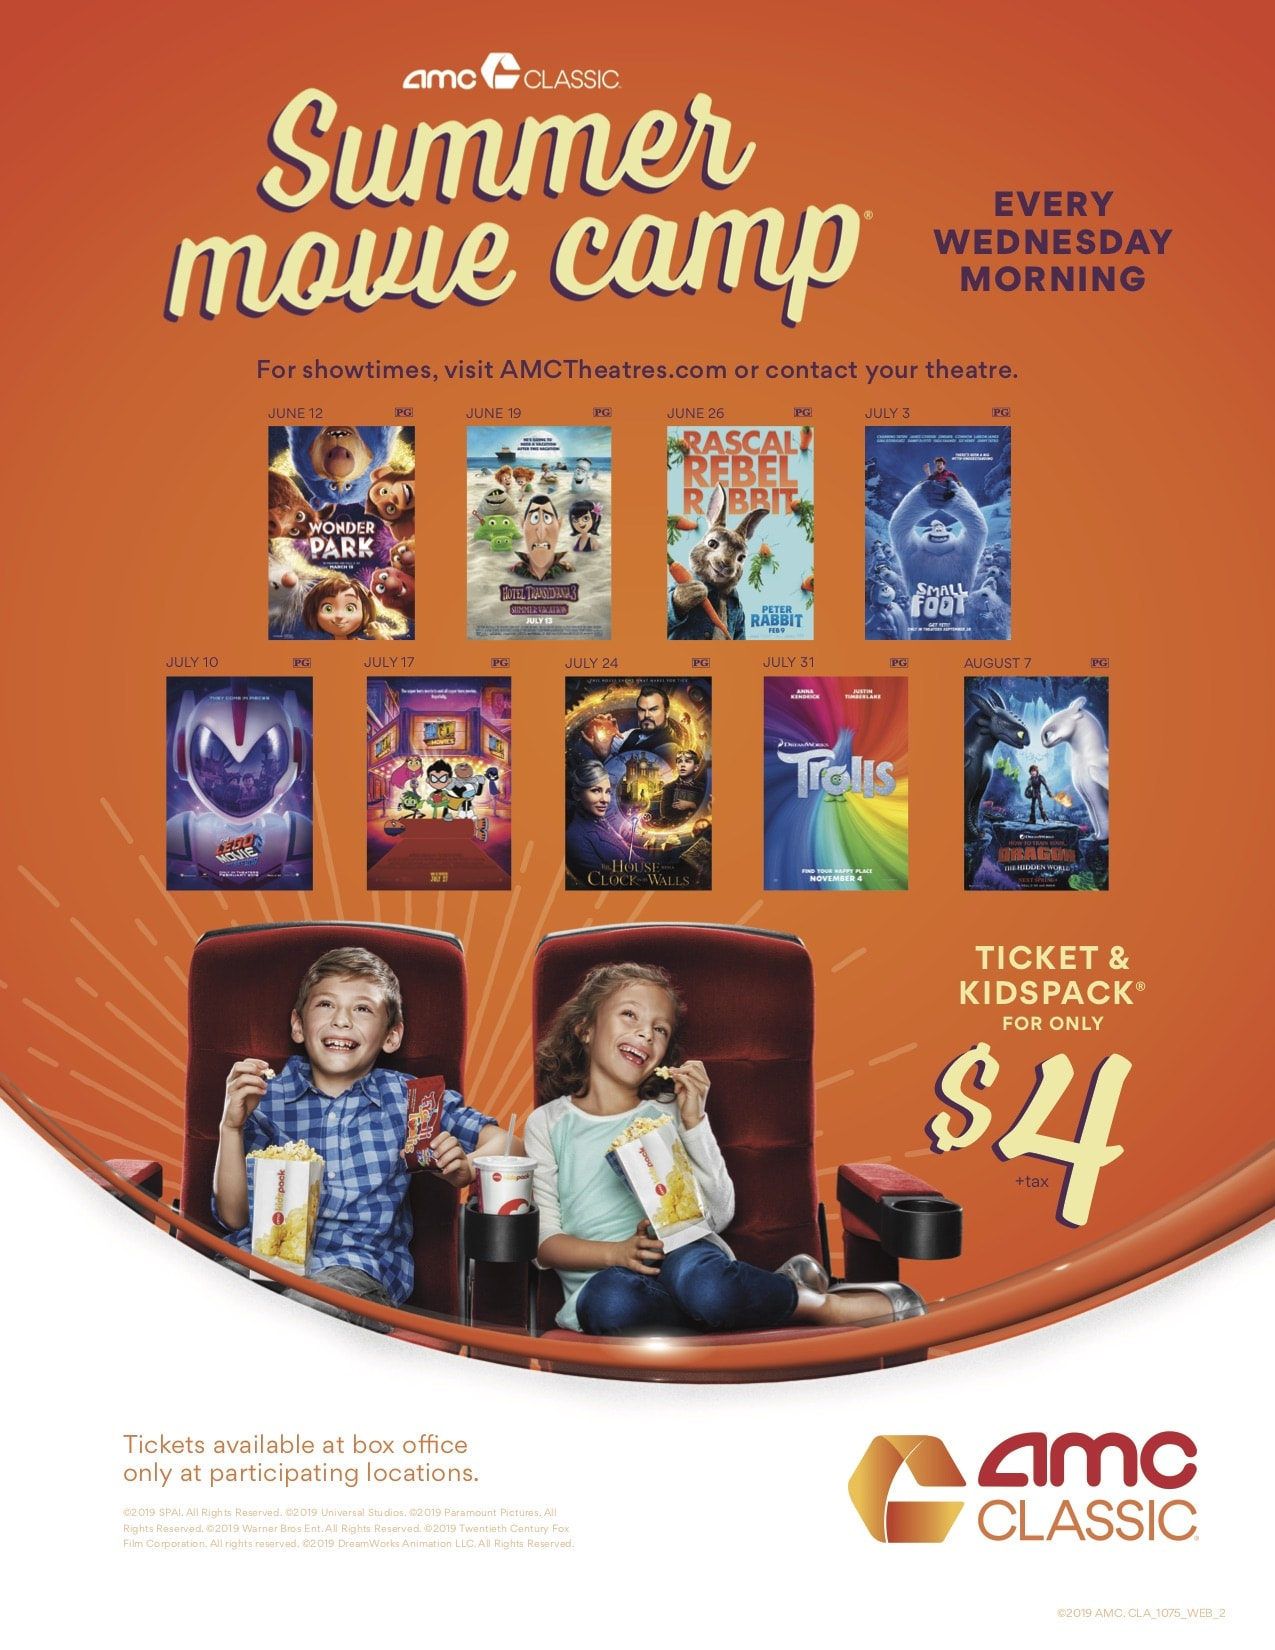 AMC Summer Movie Camp lineup